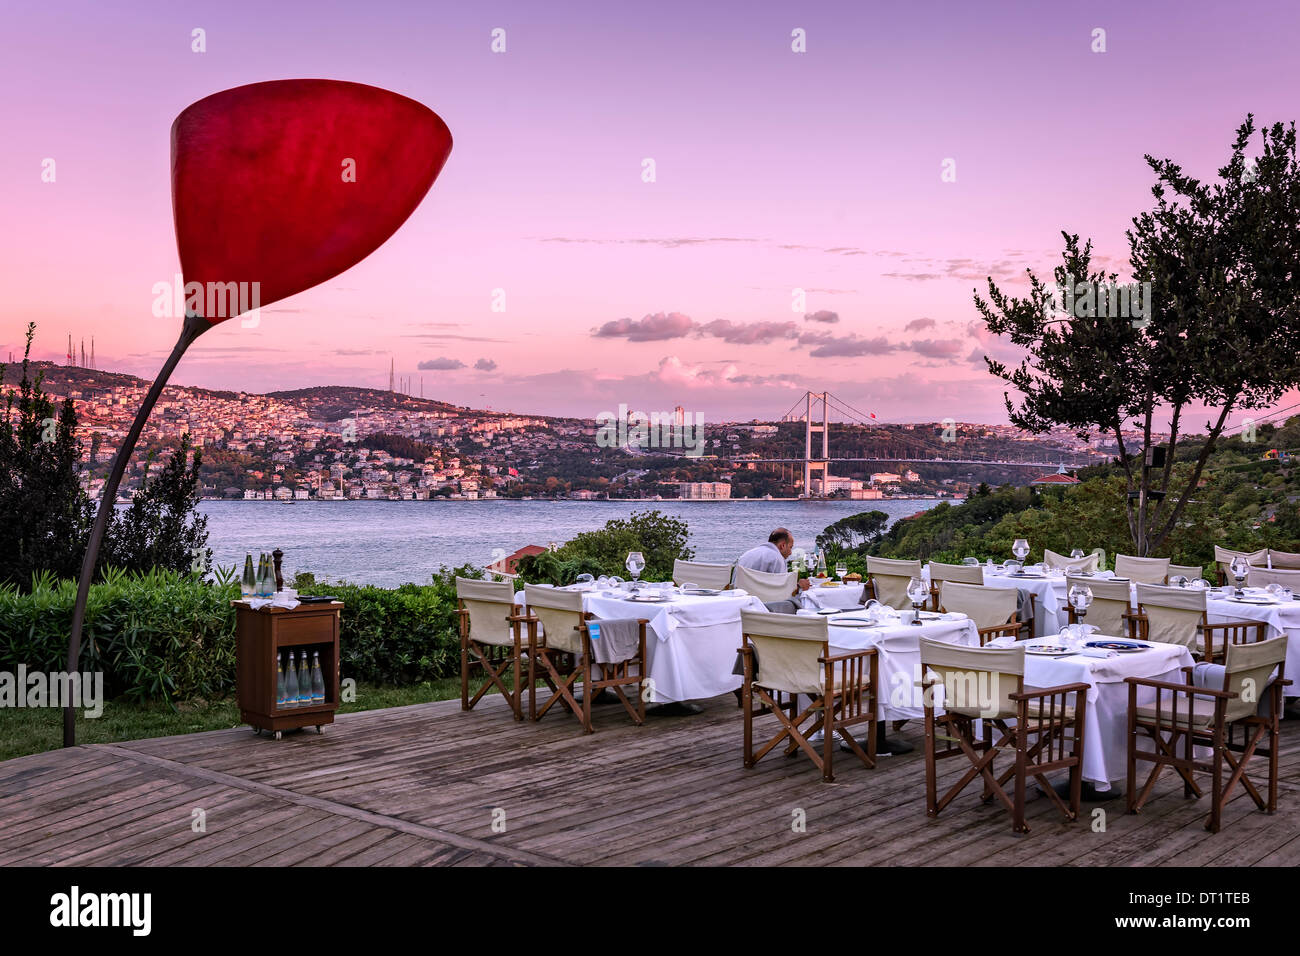 View over the Bosporus from the Sunset Grill & Bar in Besiktas, Istanbul, Turkey. - Stock Image